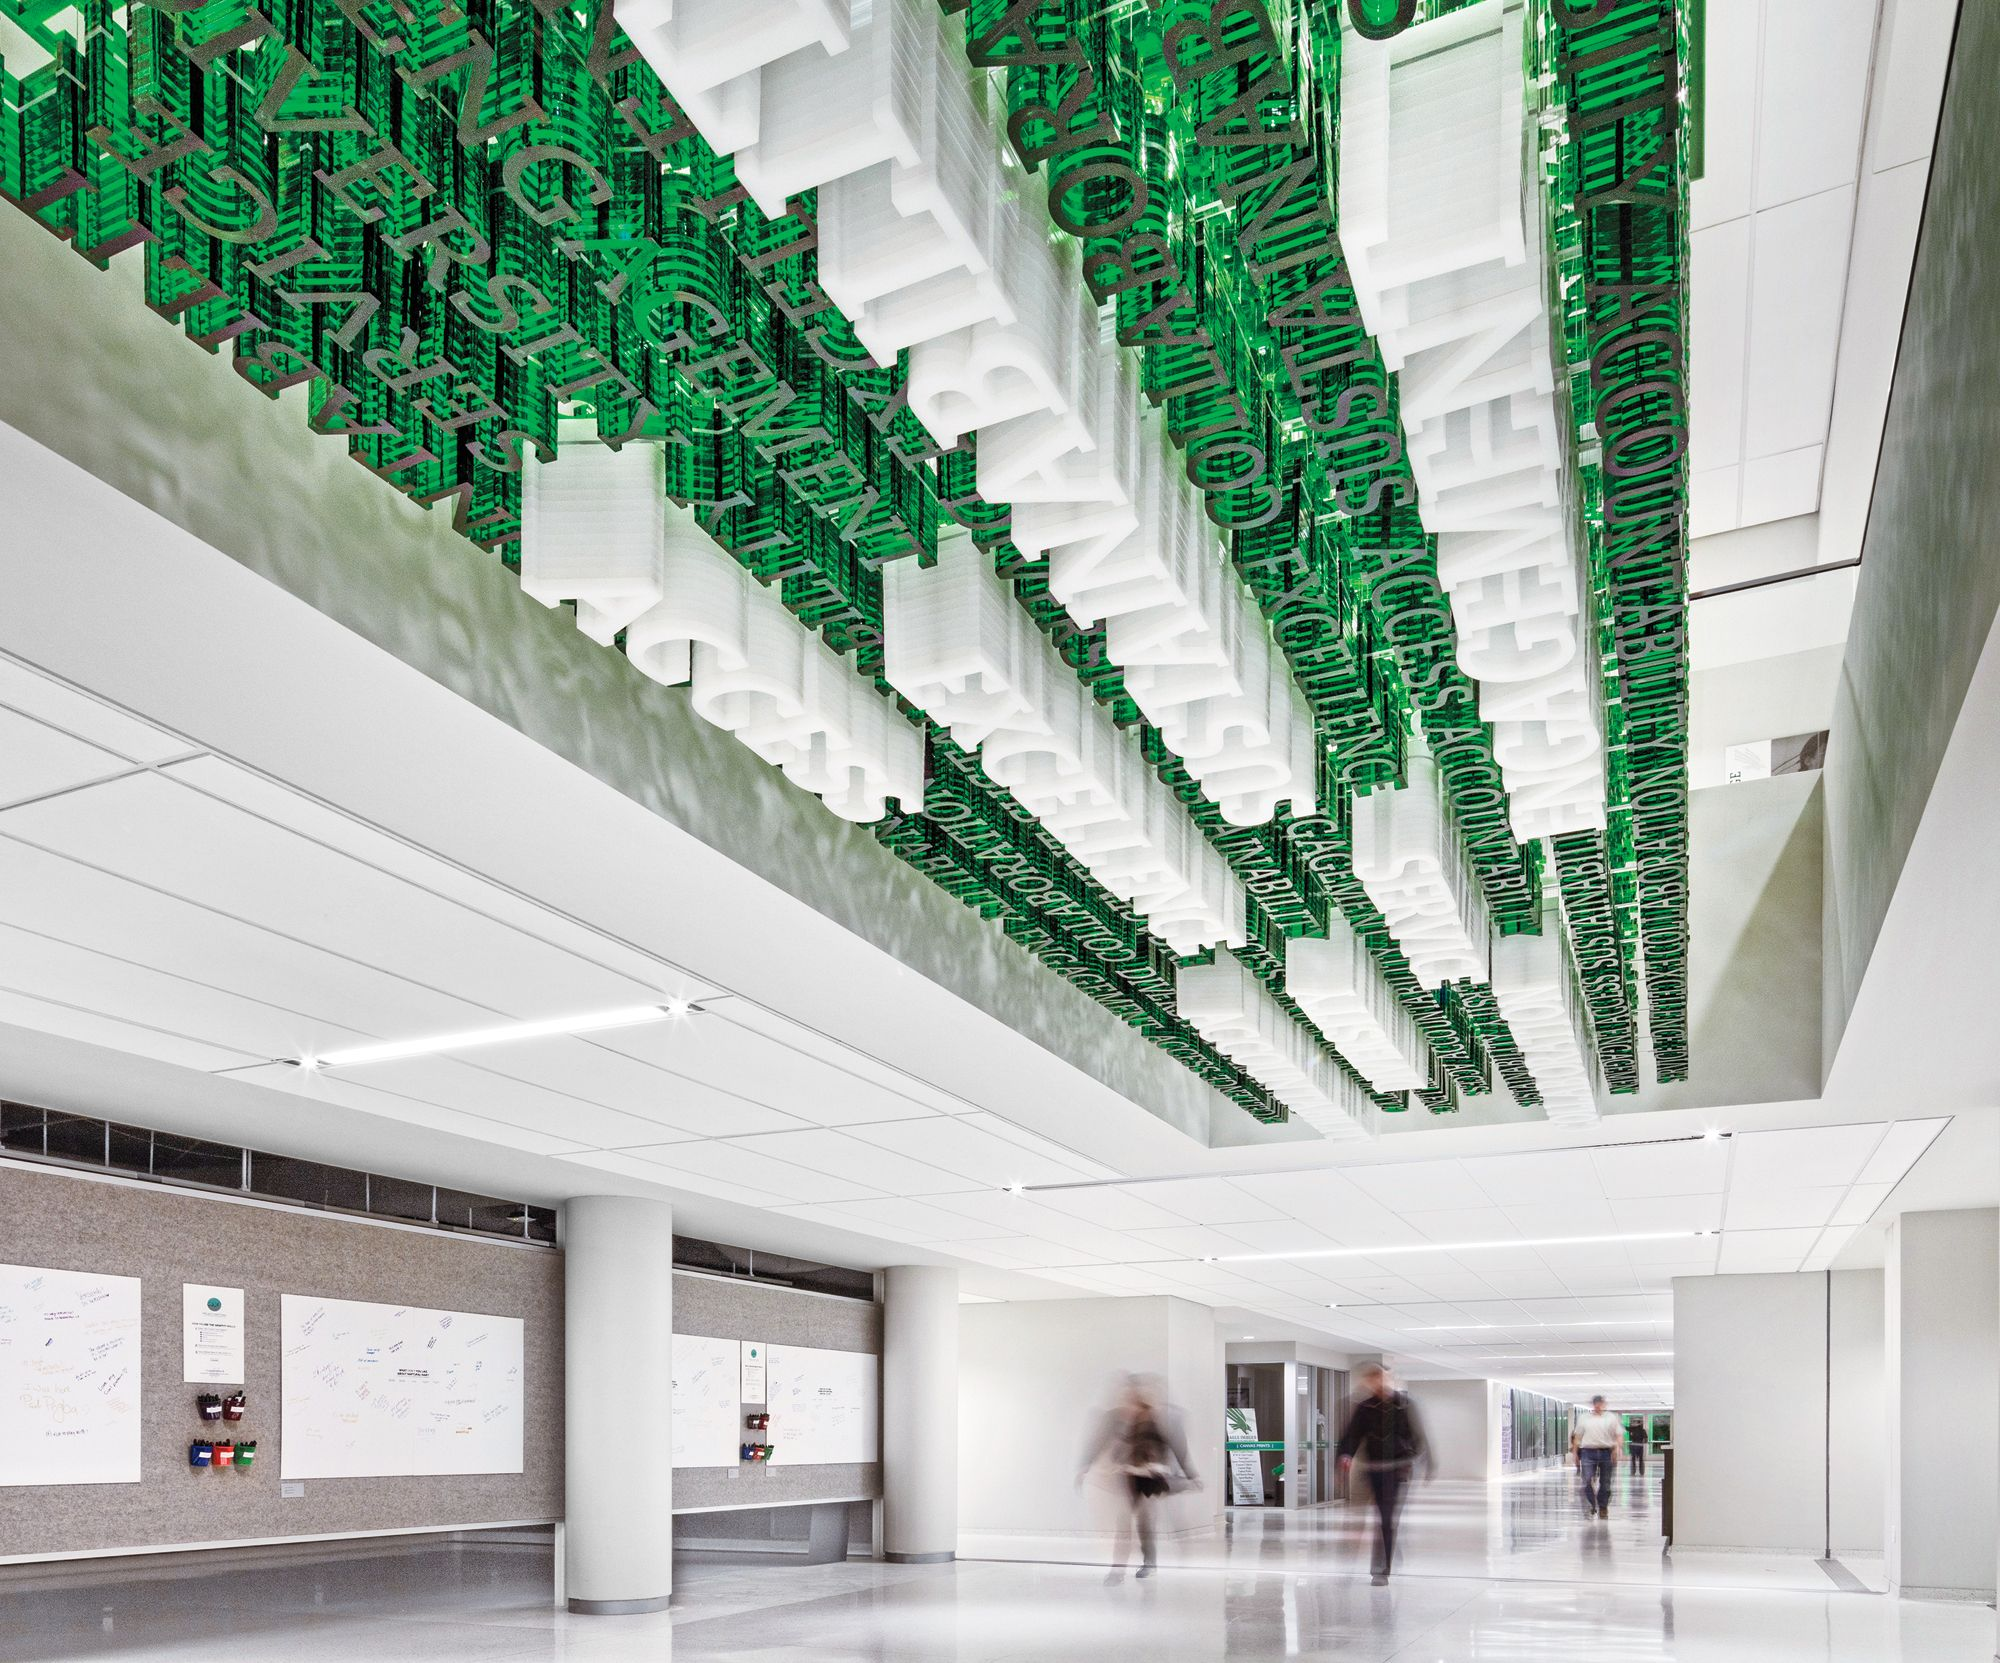 UNT Student Center by Perkins Will: 2016 Best of Year Winner for Mixed Branding/Graphics